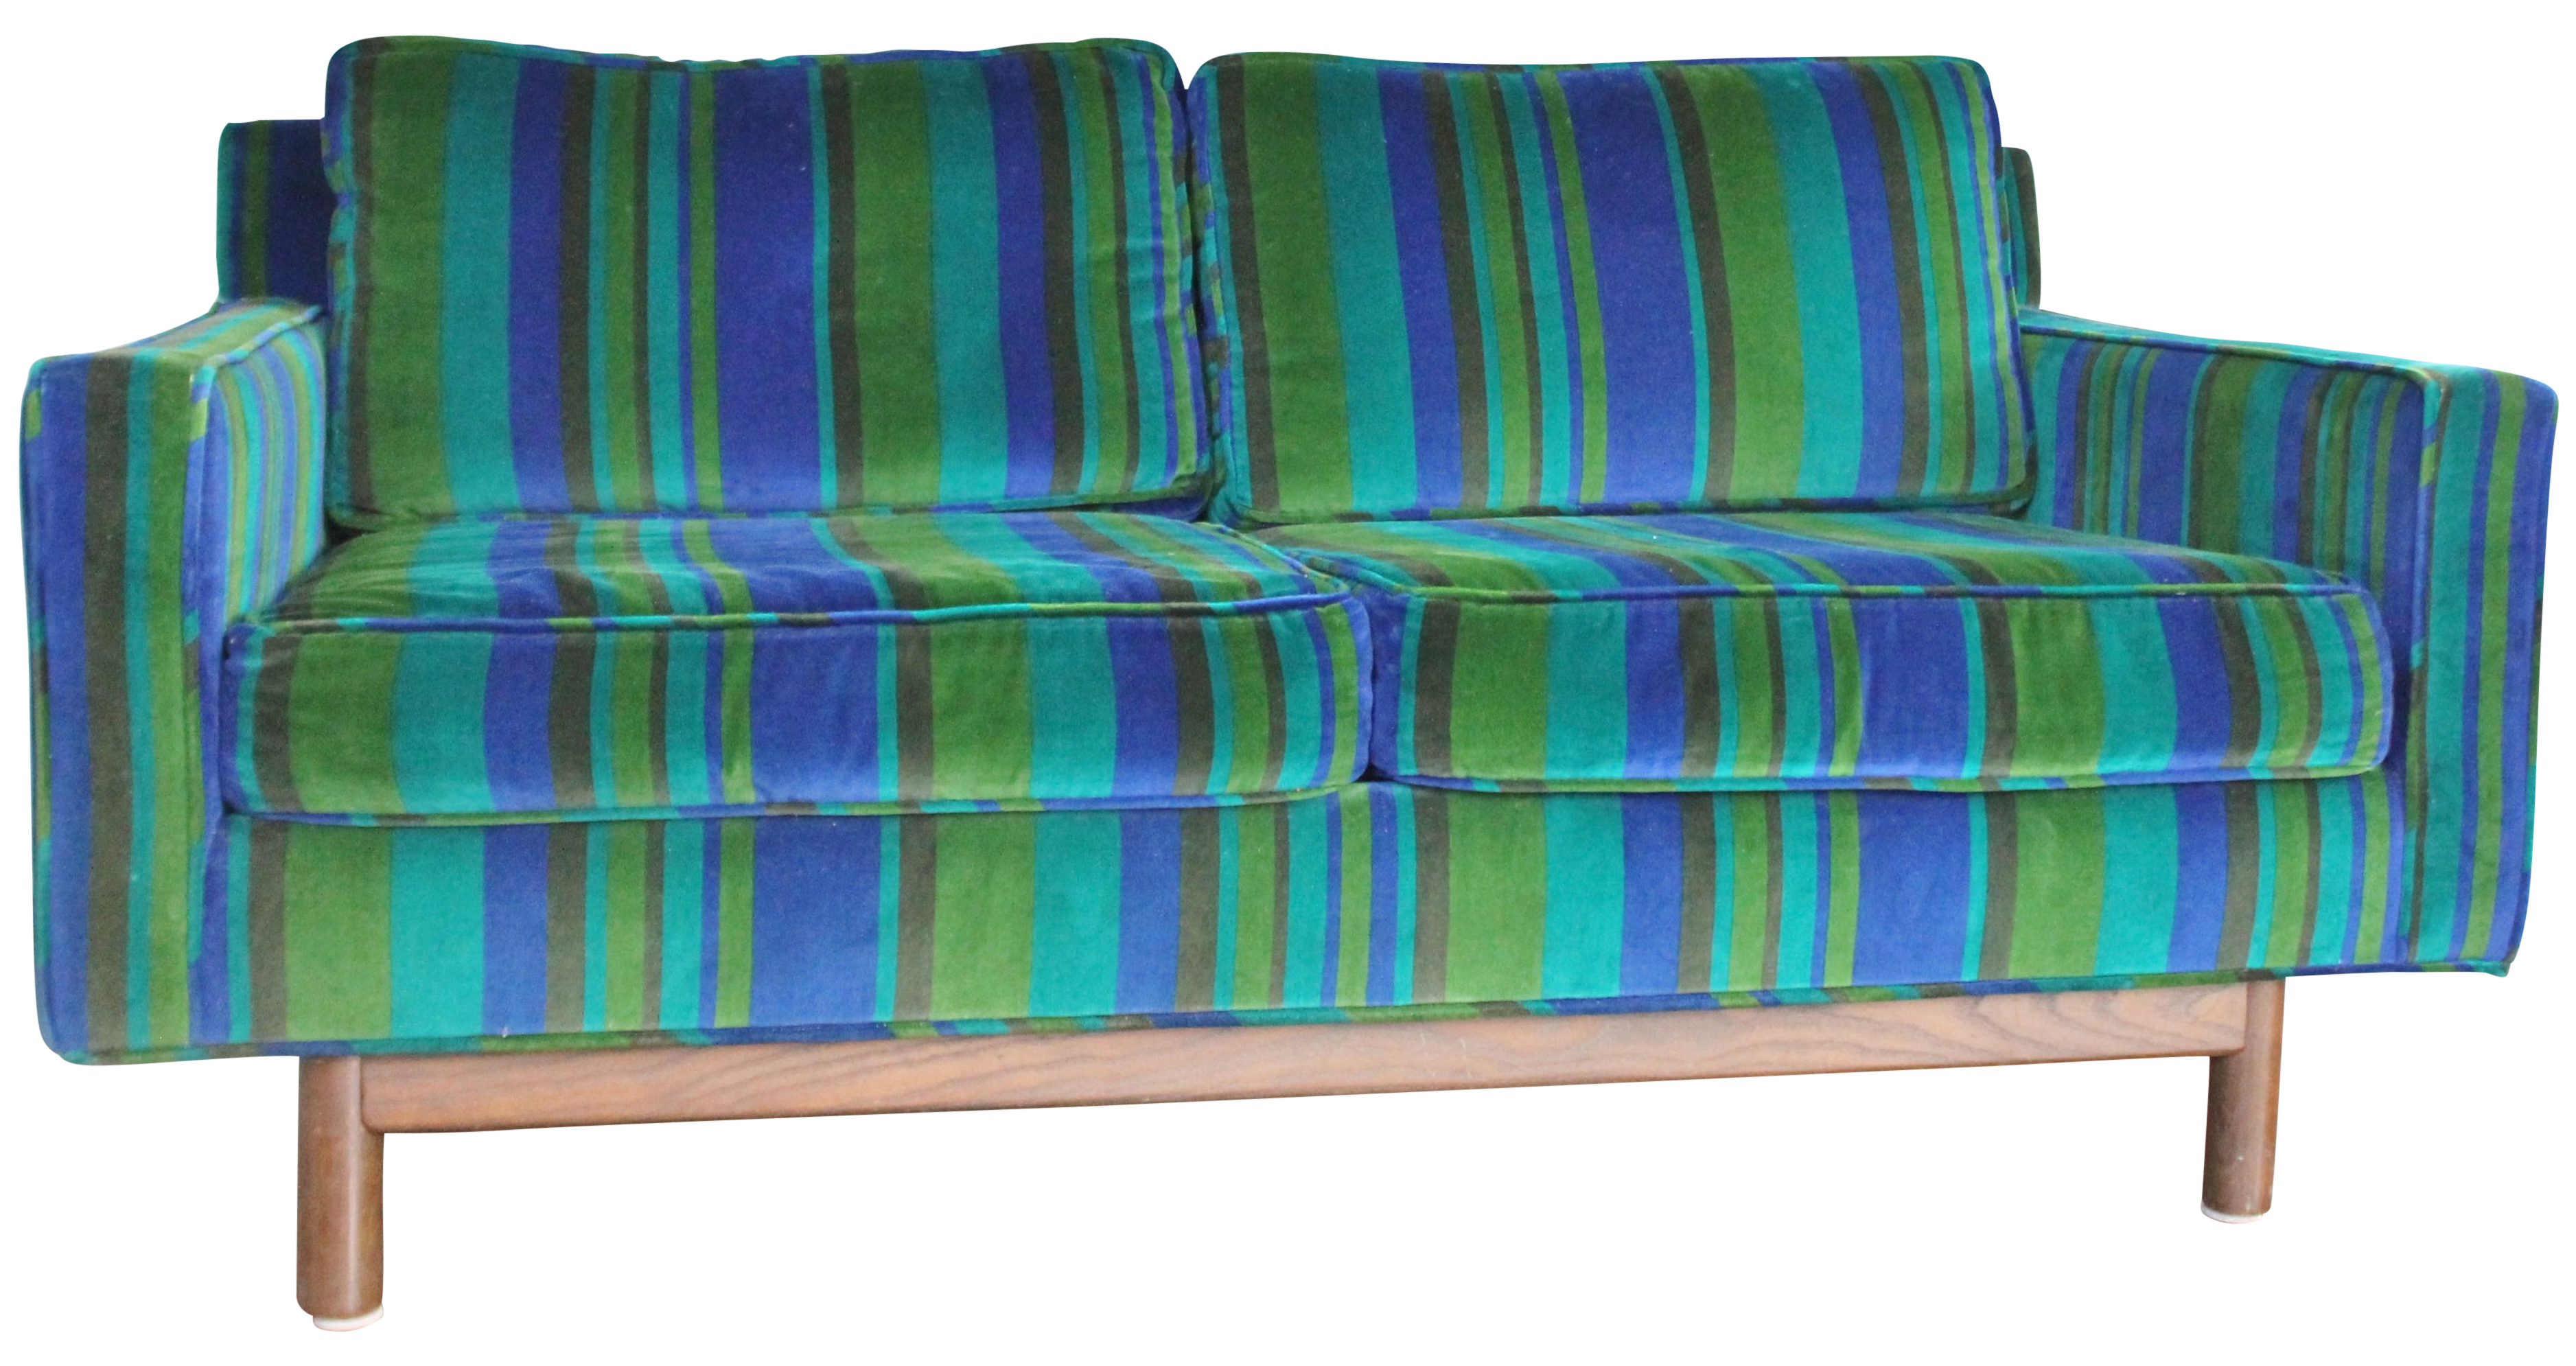 id f velvet seating loveseat settees green small at for settee french sale master in furniture